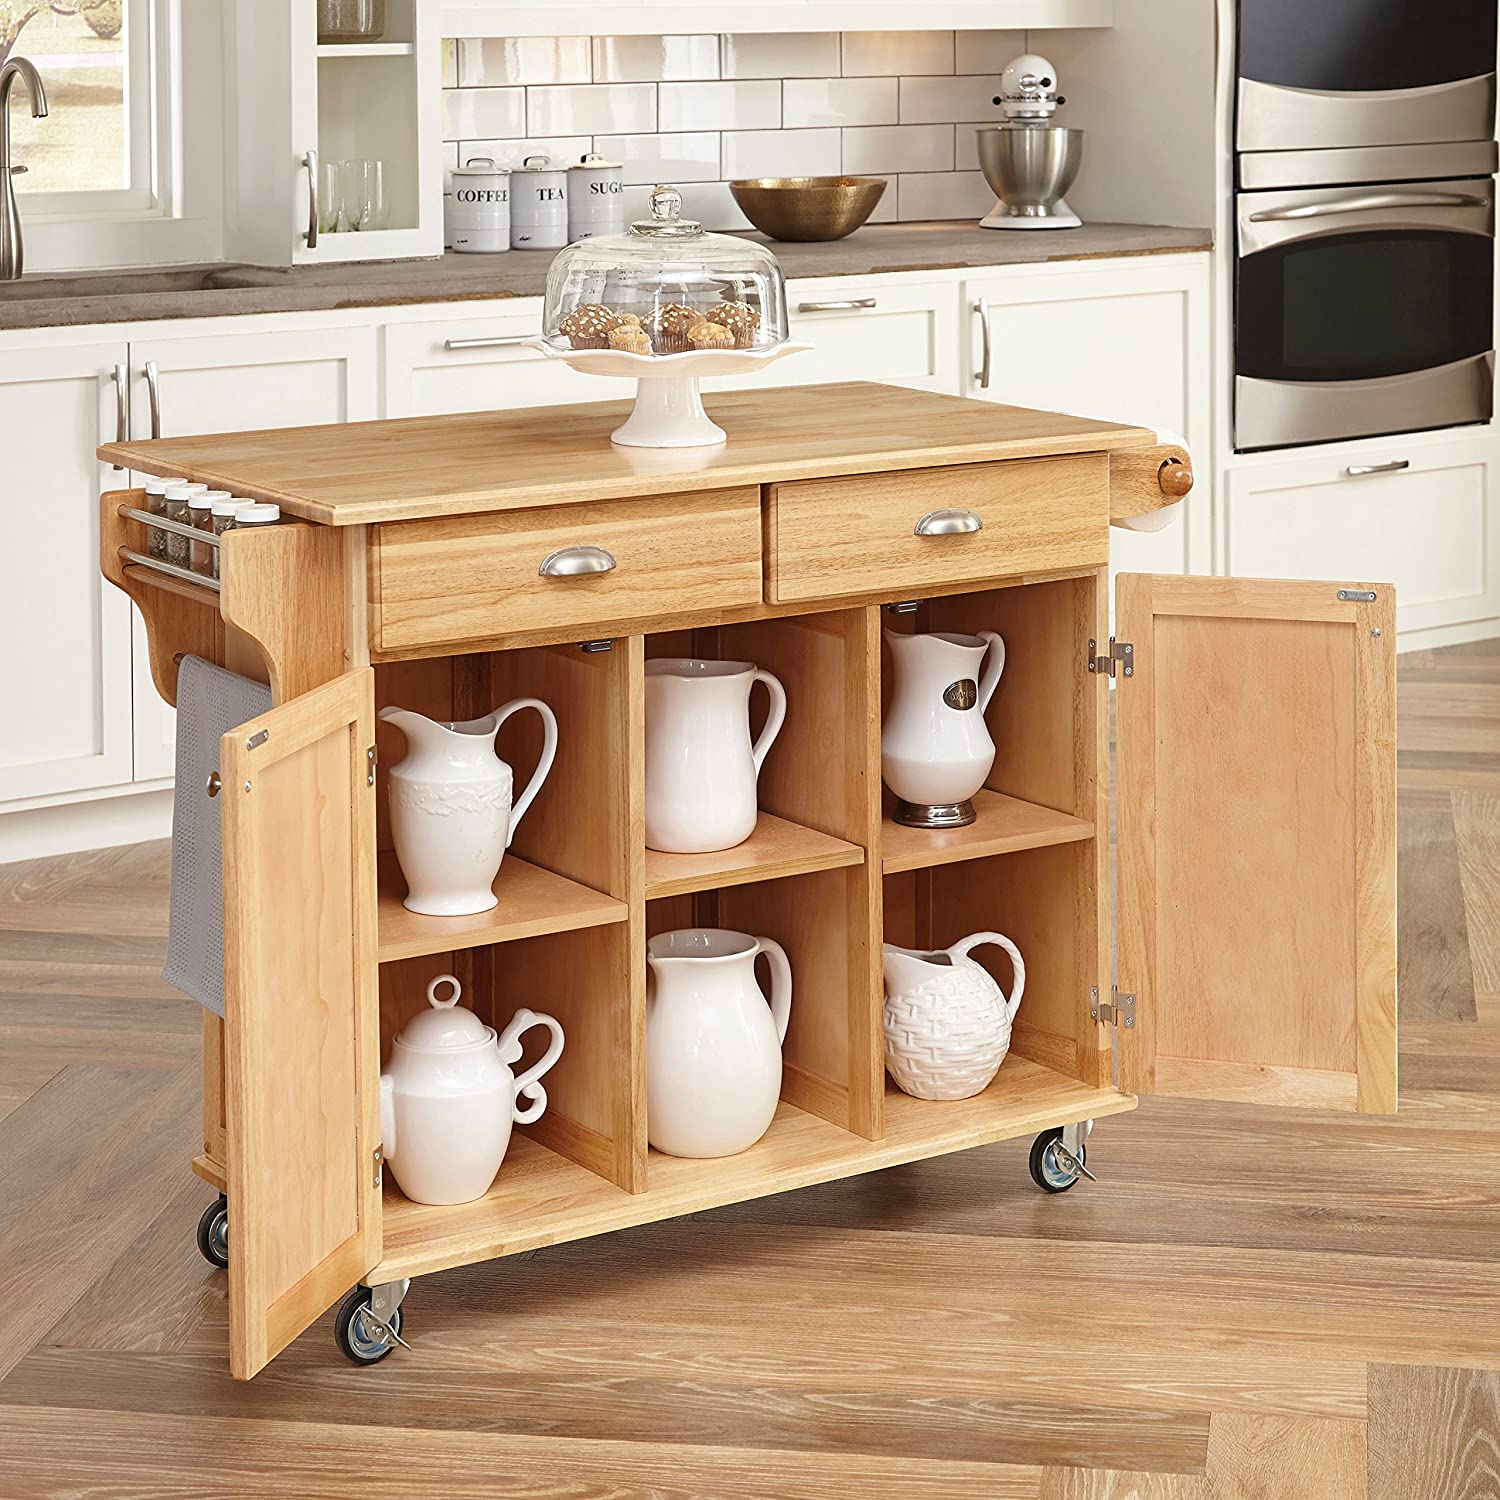 Charmant Amazon.com: Home Styles 5099 95 Napa Kitchen Center, Natural Finish: Kitchen  U0026 Dining